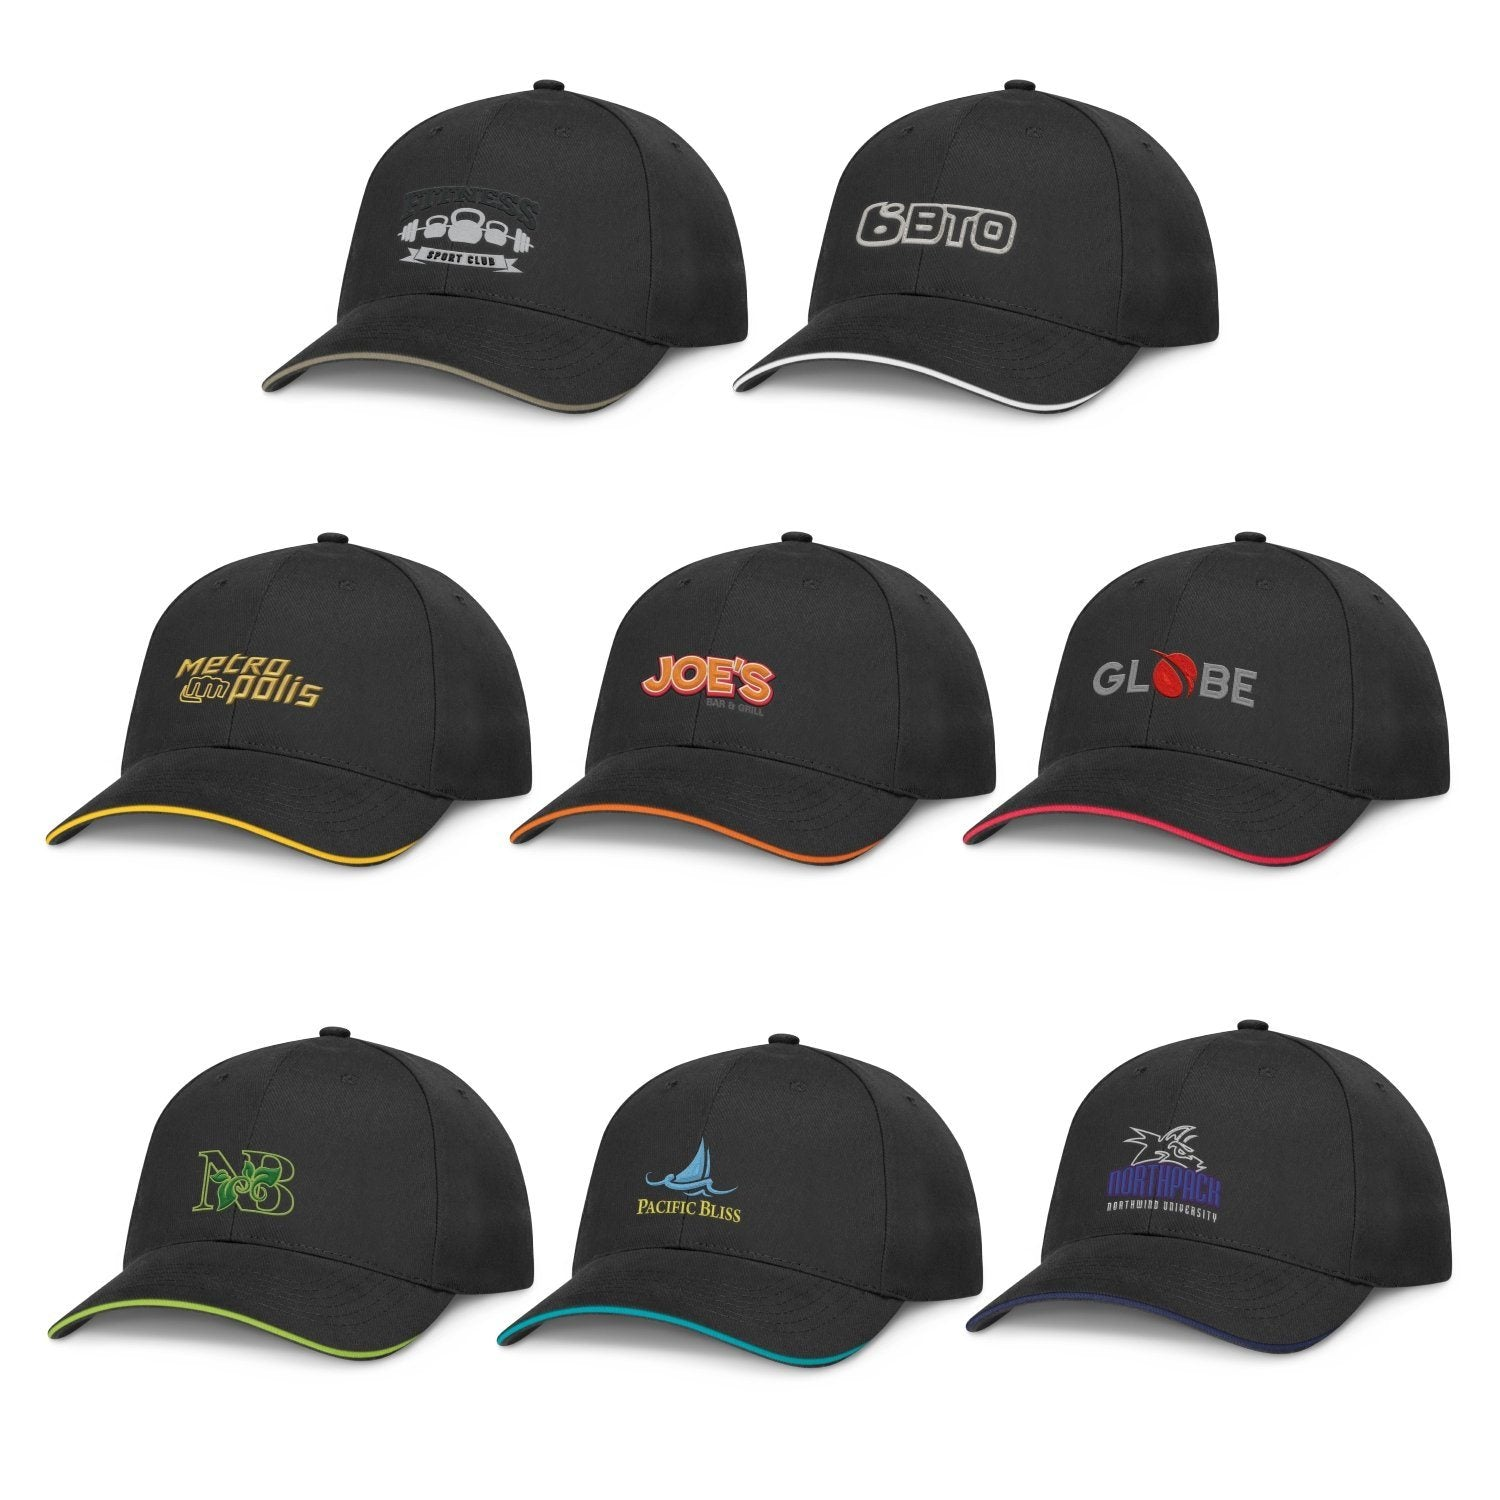 Premium Cotton Cap - Black(SHW-21T) - greenpac.com.au